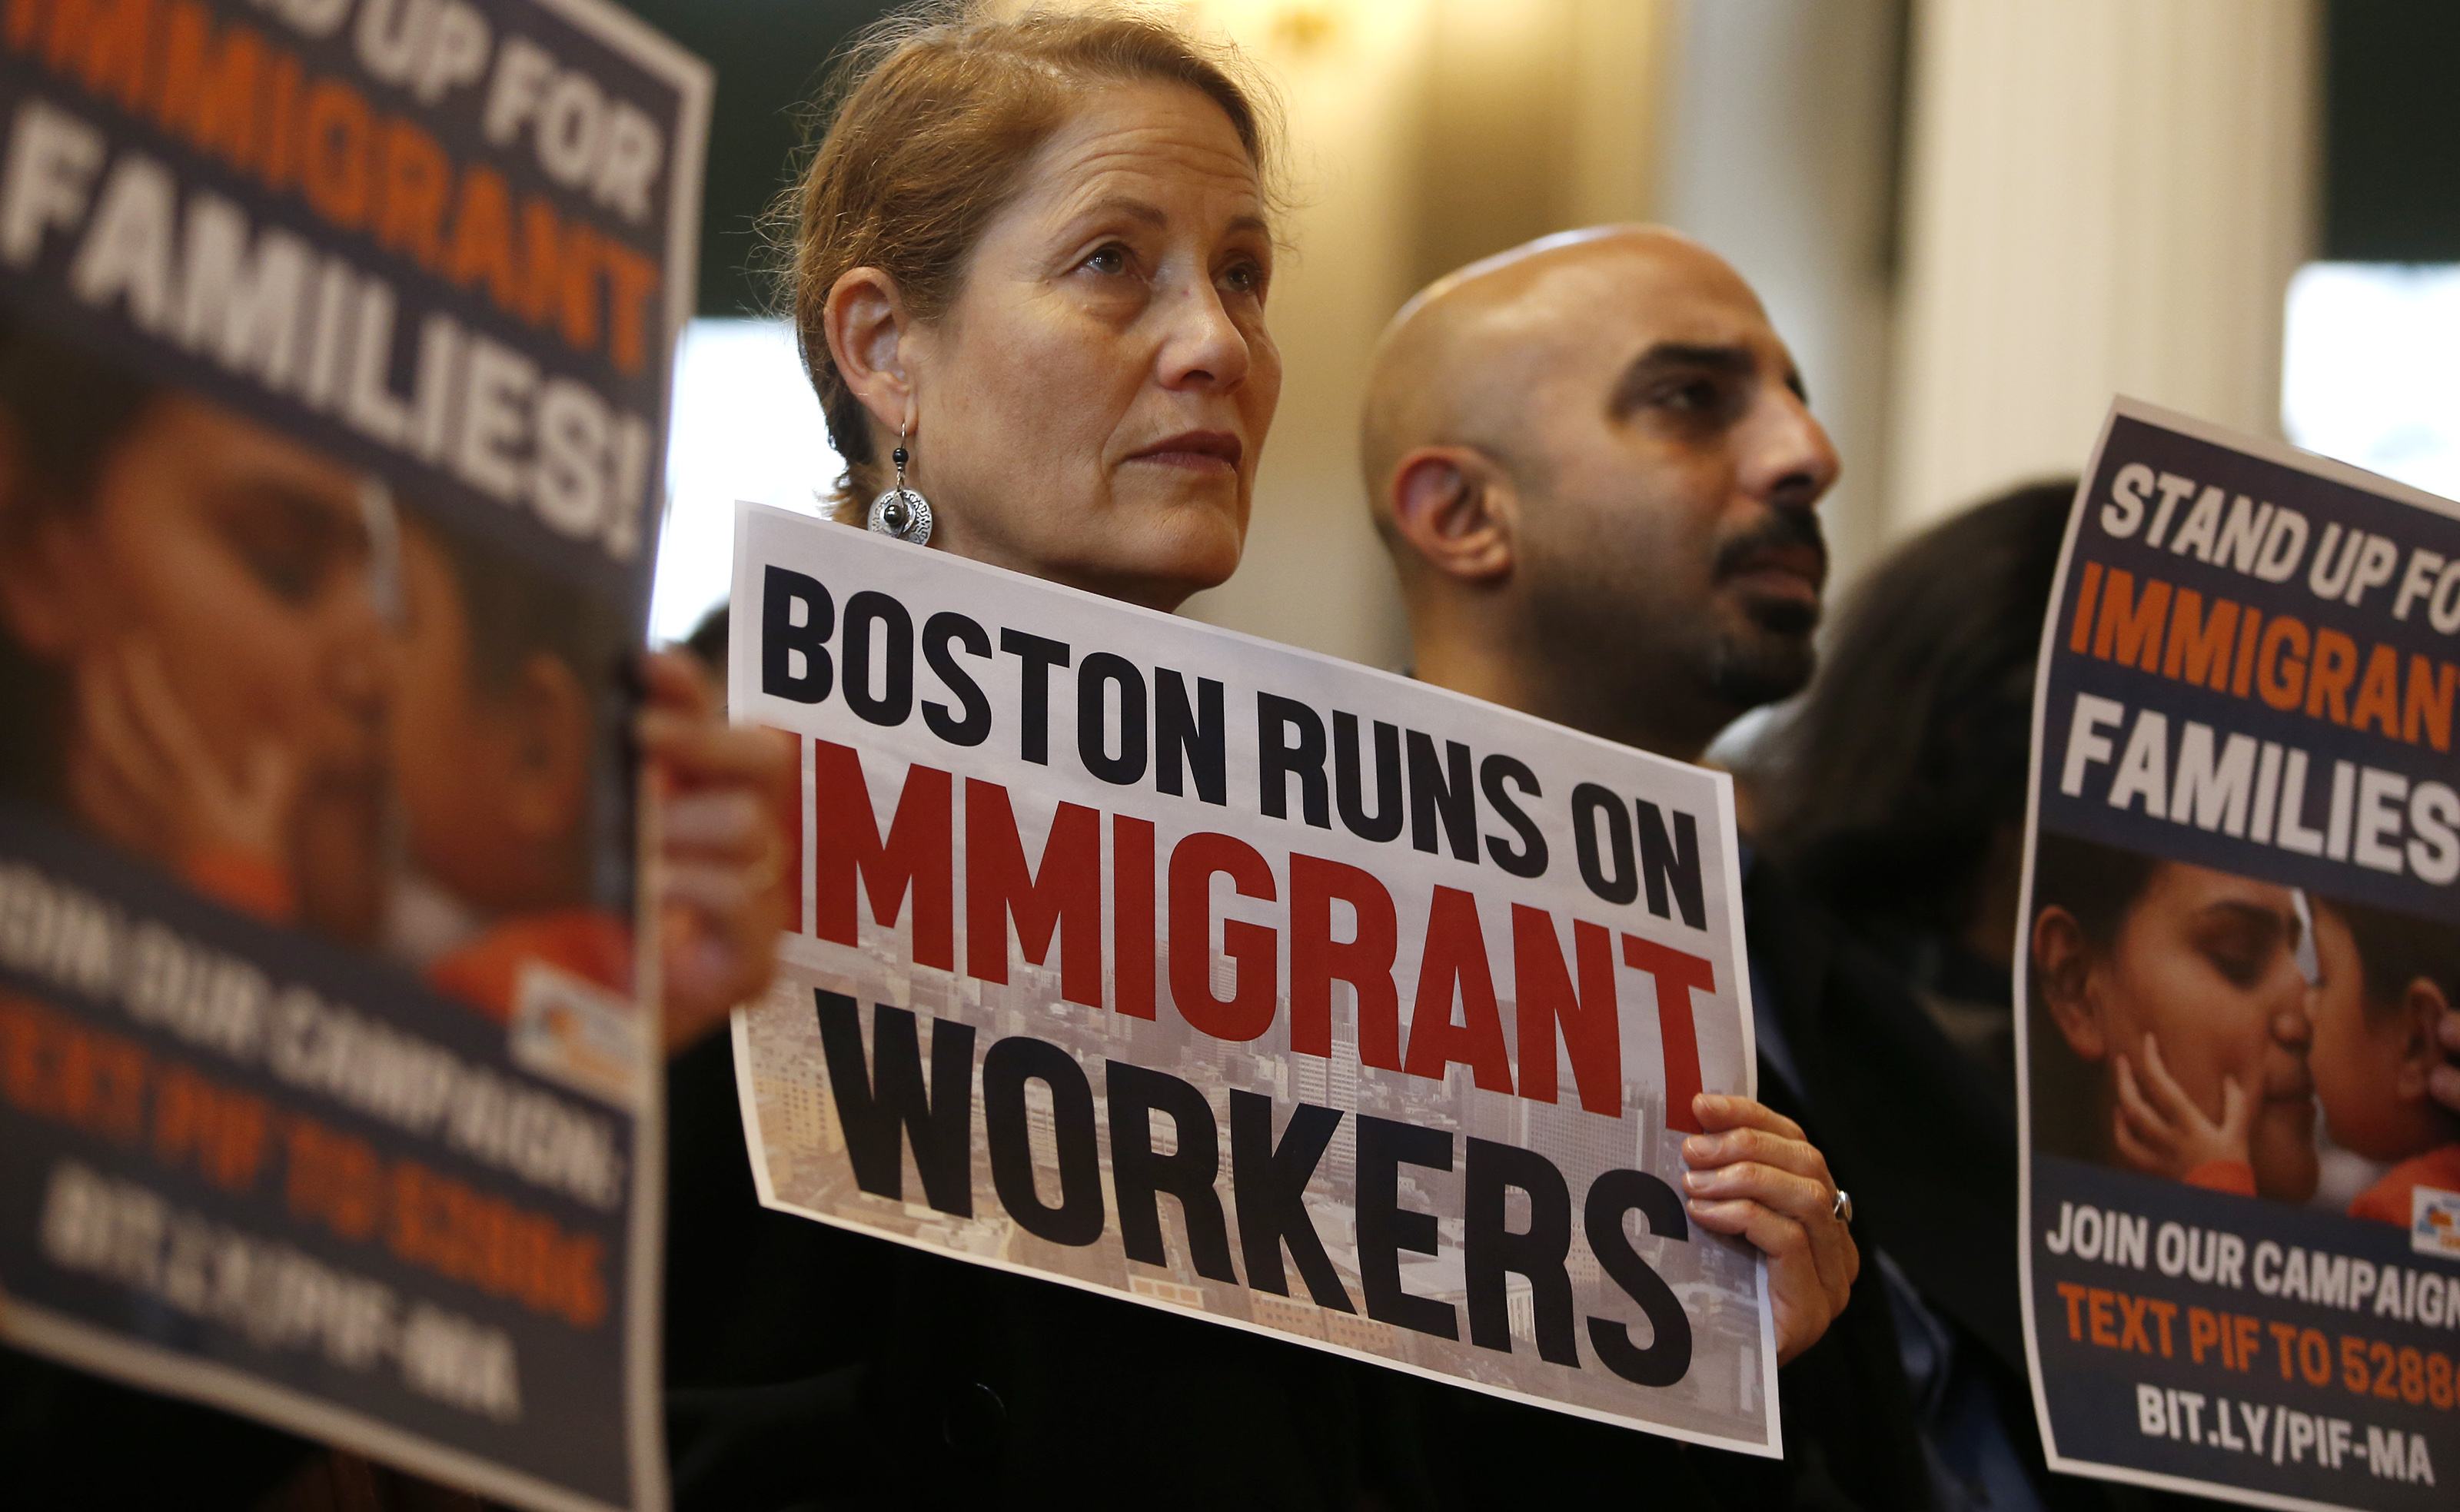 Is Boston truly looking out for immigrants? Not in this case  - The